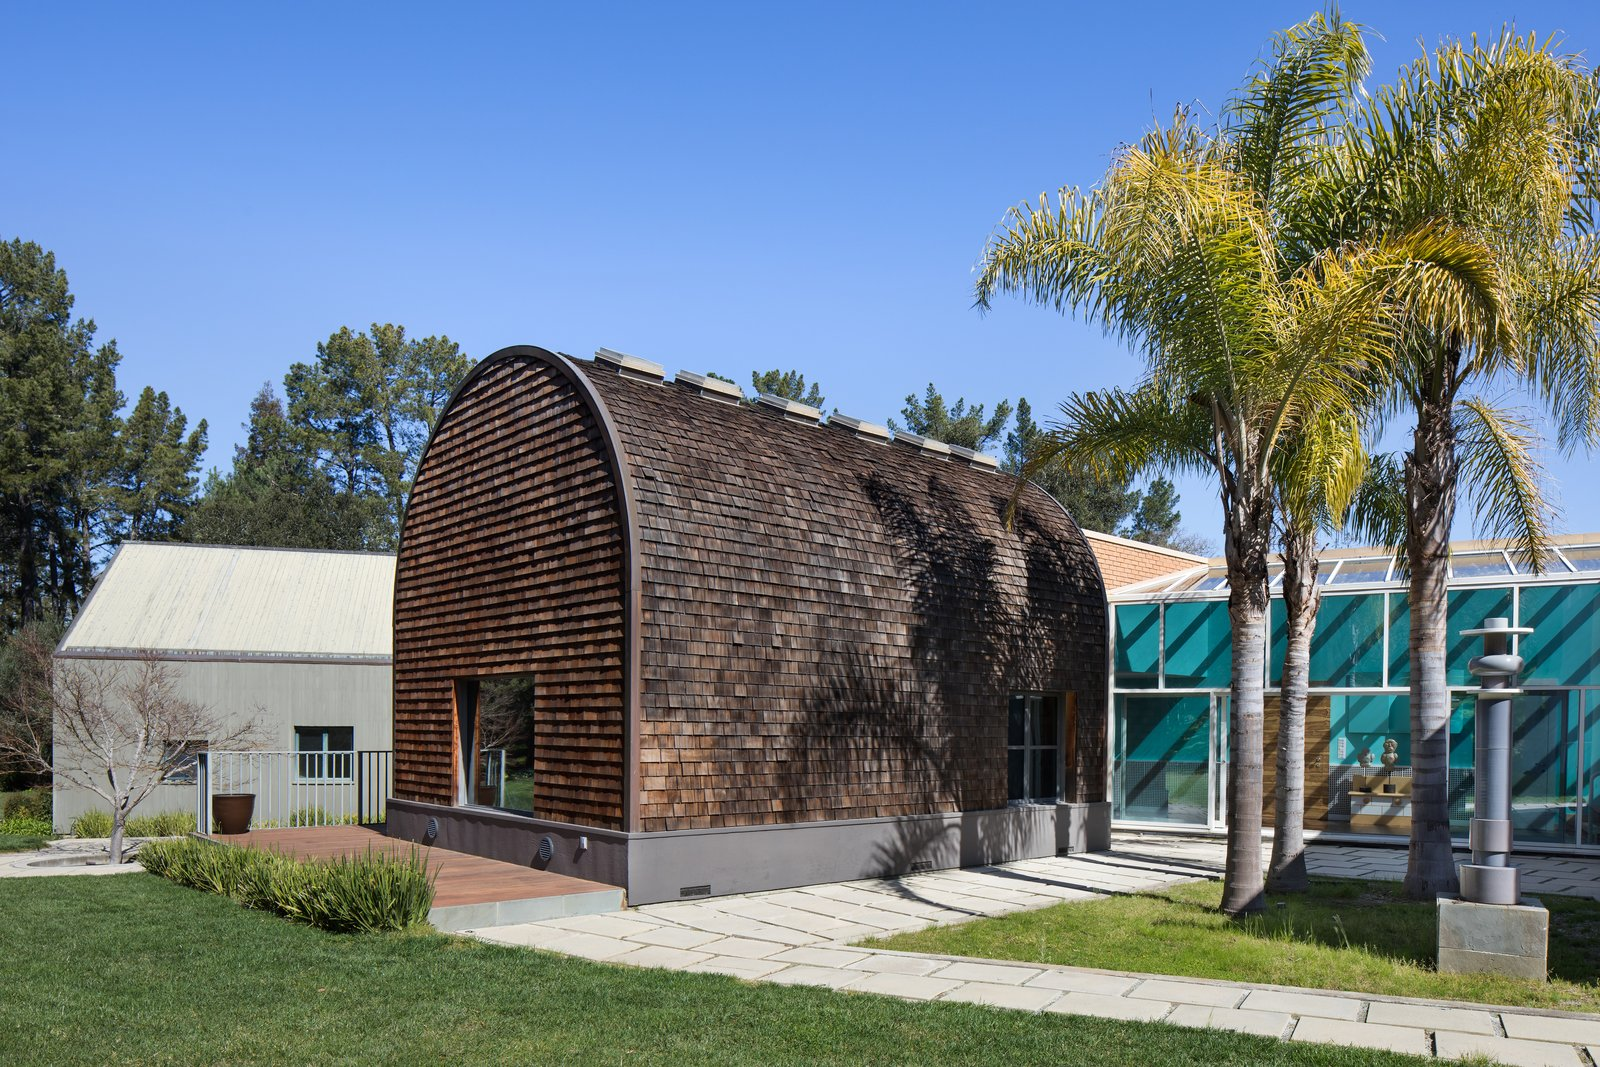 The disjunction between each pavilion is most visible from a rear view, which reveals the variety of materials used, from glass to wood to brick.  Photo 9 of 12 in IDEO Founder David Kelley Asks $13.5M For His Ettore Sottsass-Designed Masterpiece